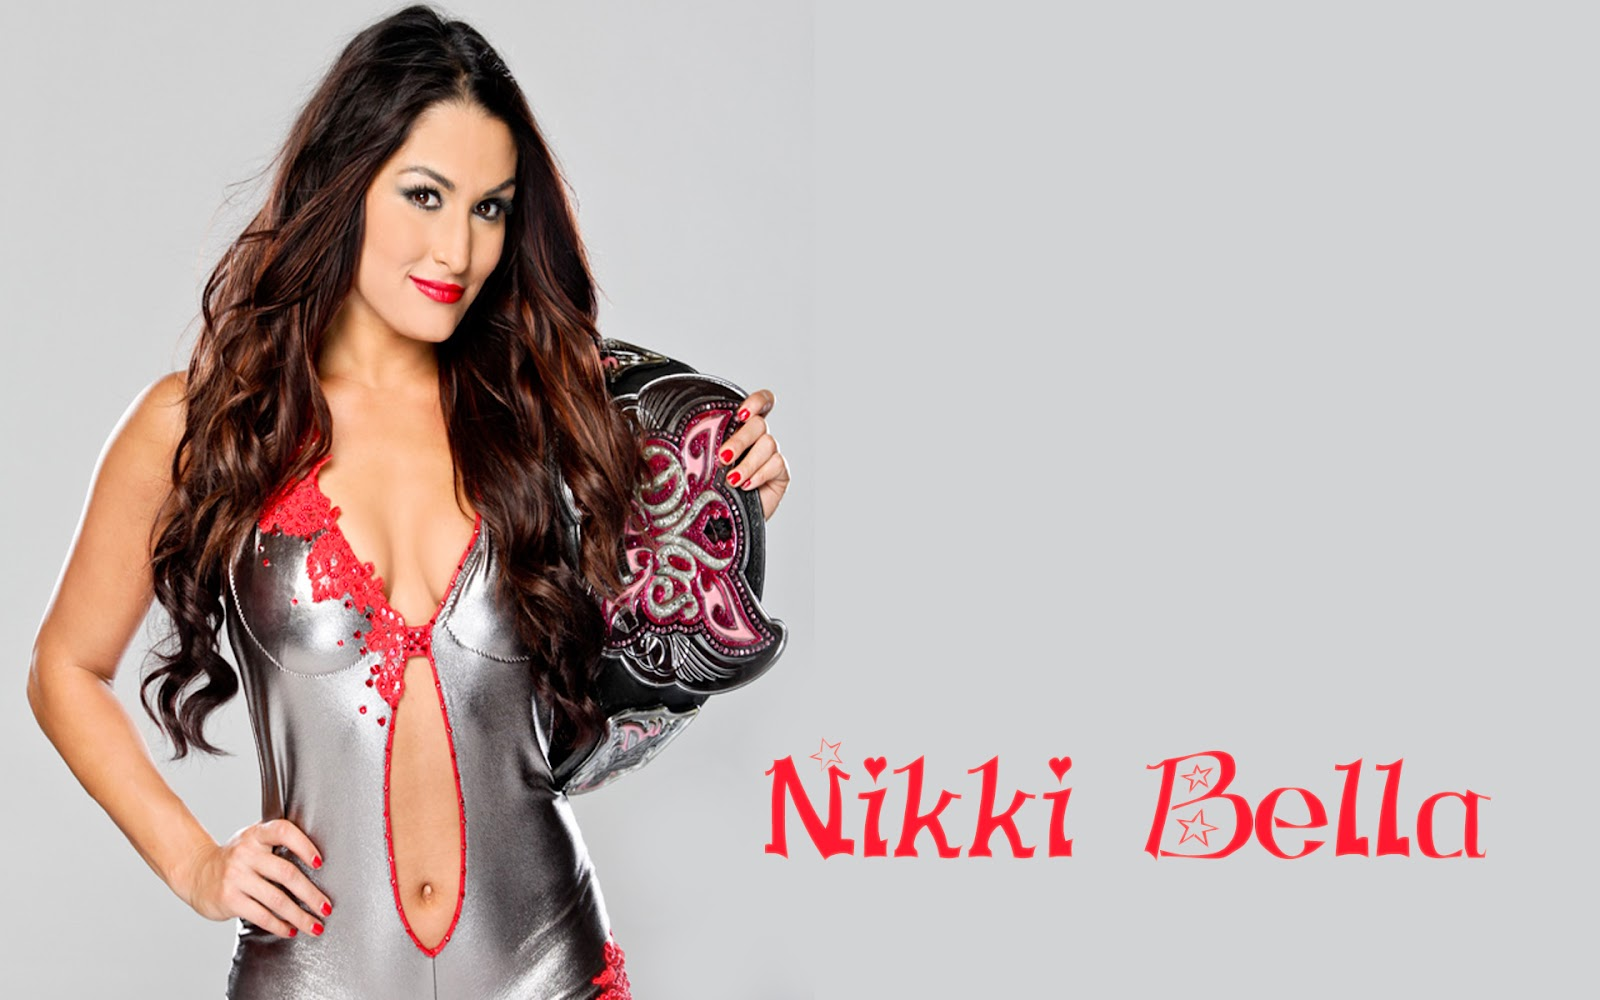 Wwe Super Star Nikki Bella Hd Wallpaper And Pictures -8018